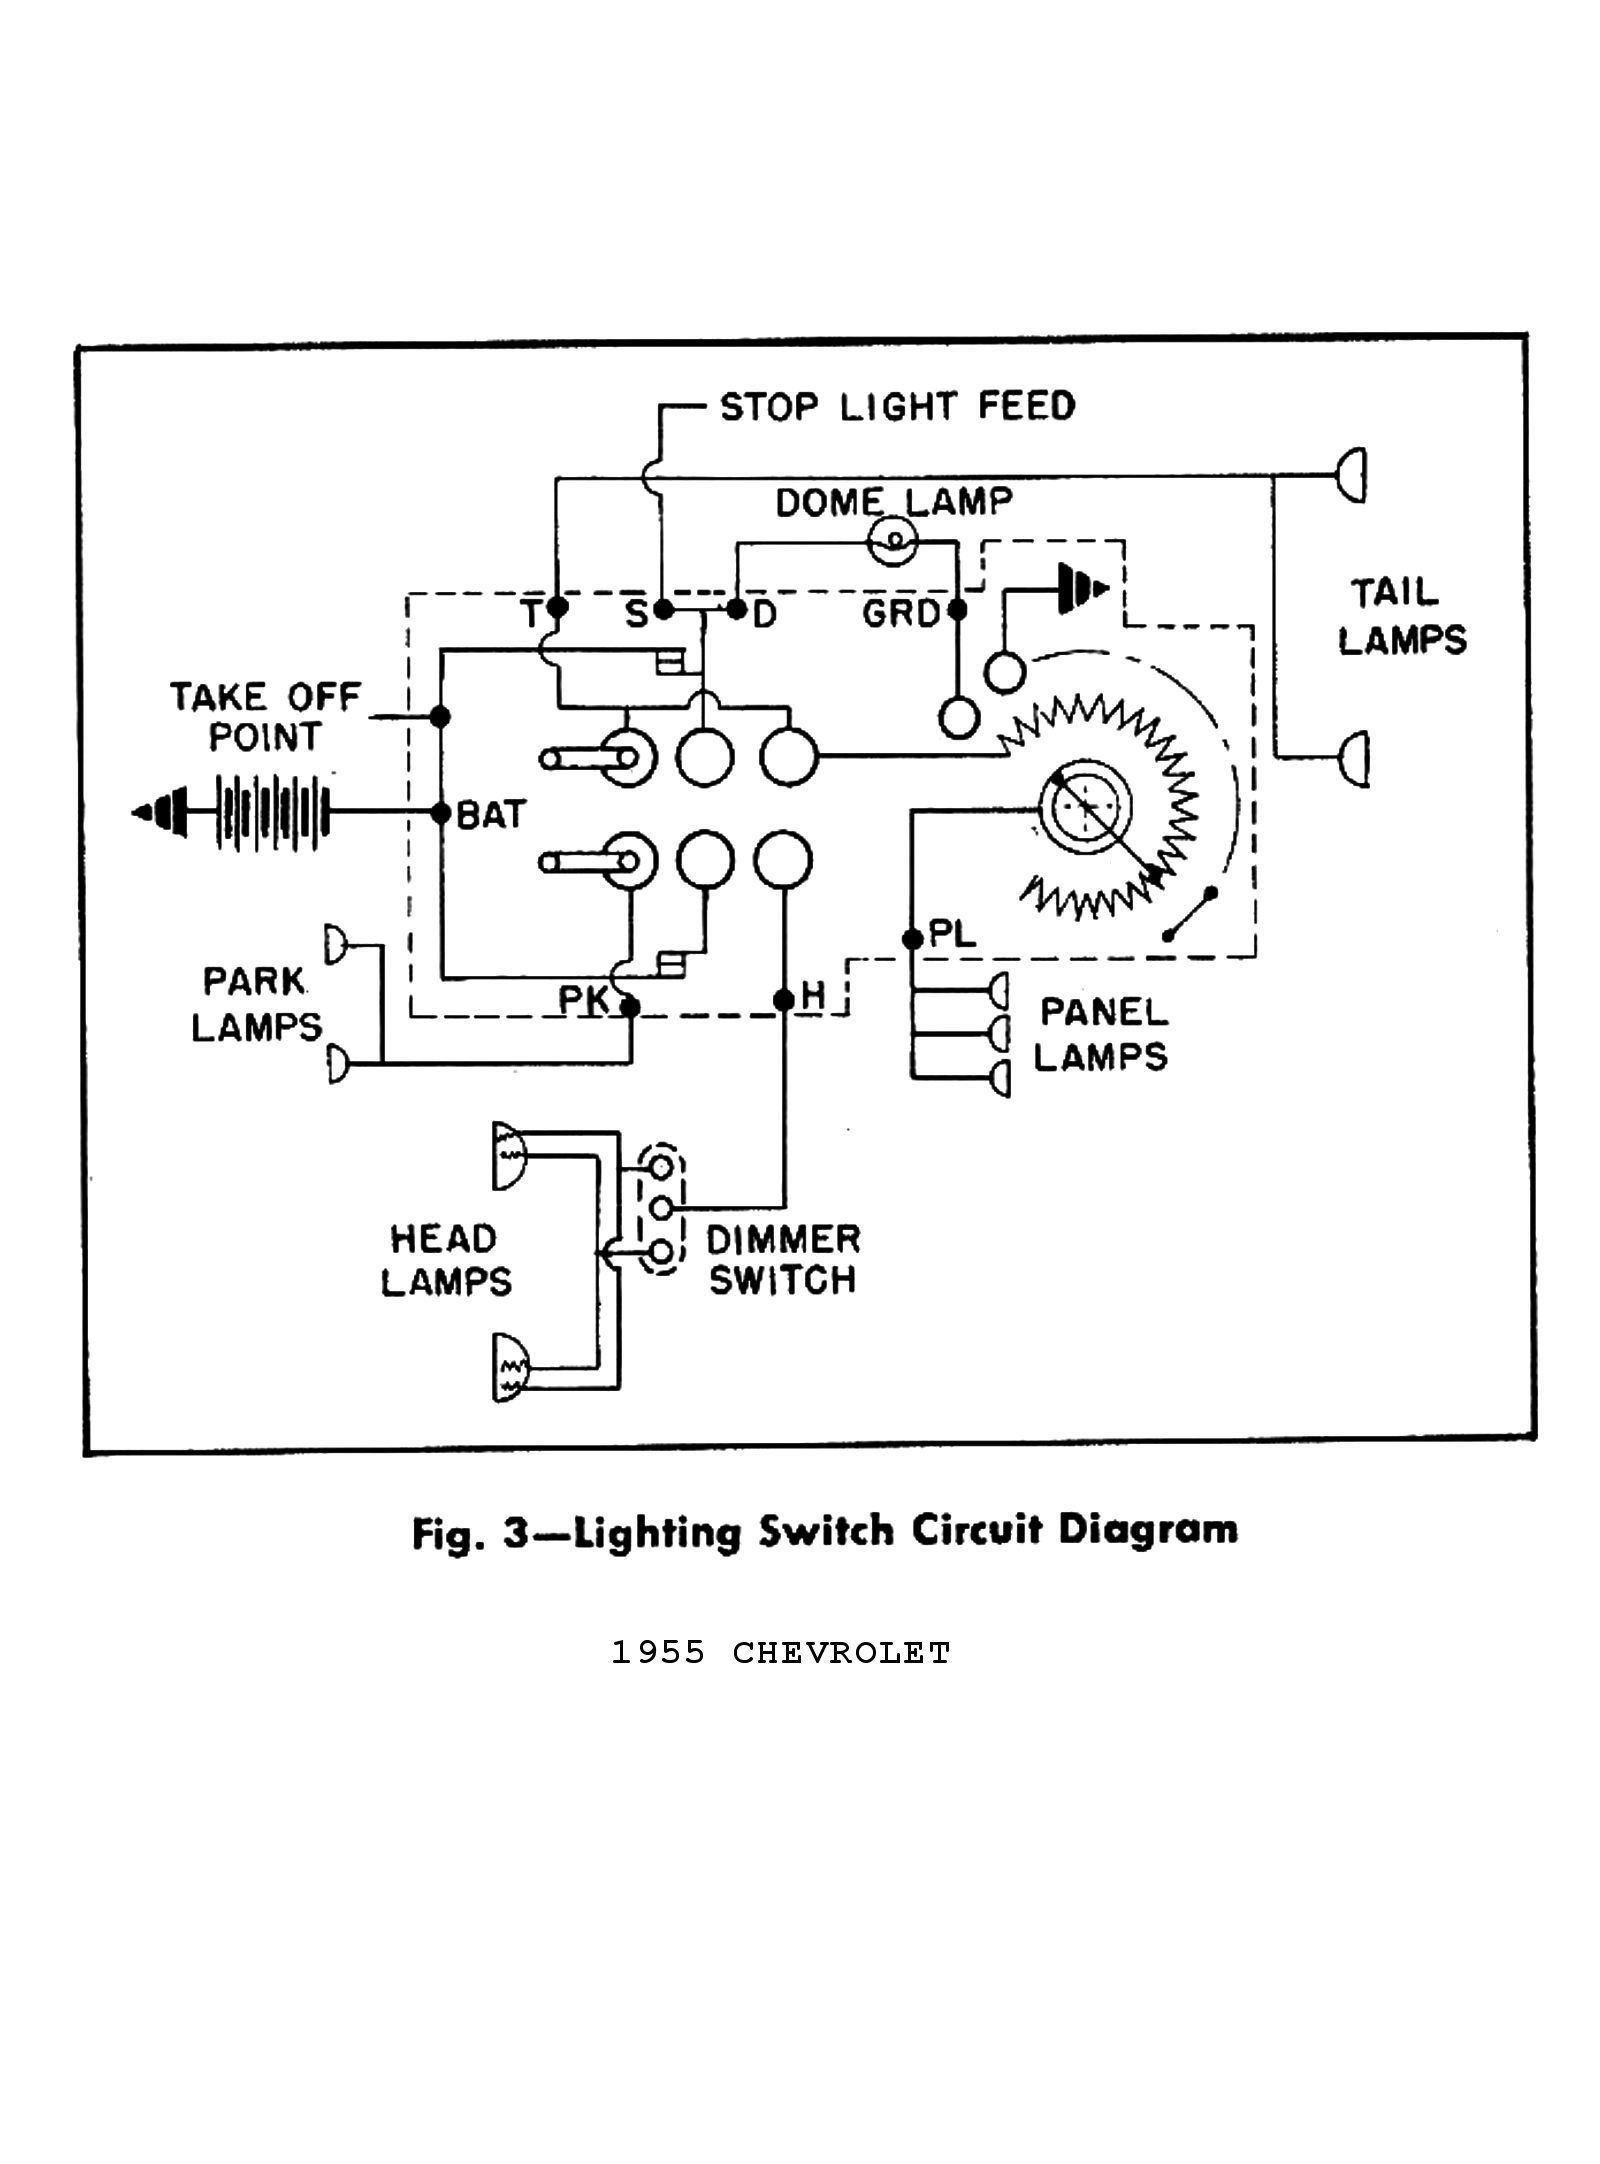 universal ignition switch wiring diagram inspirational 1955 chevy of for 1955 chevy ignition switch wiring diagram [ 1600 x 2164 Pixel ]